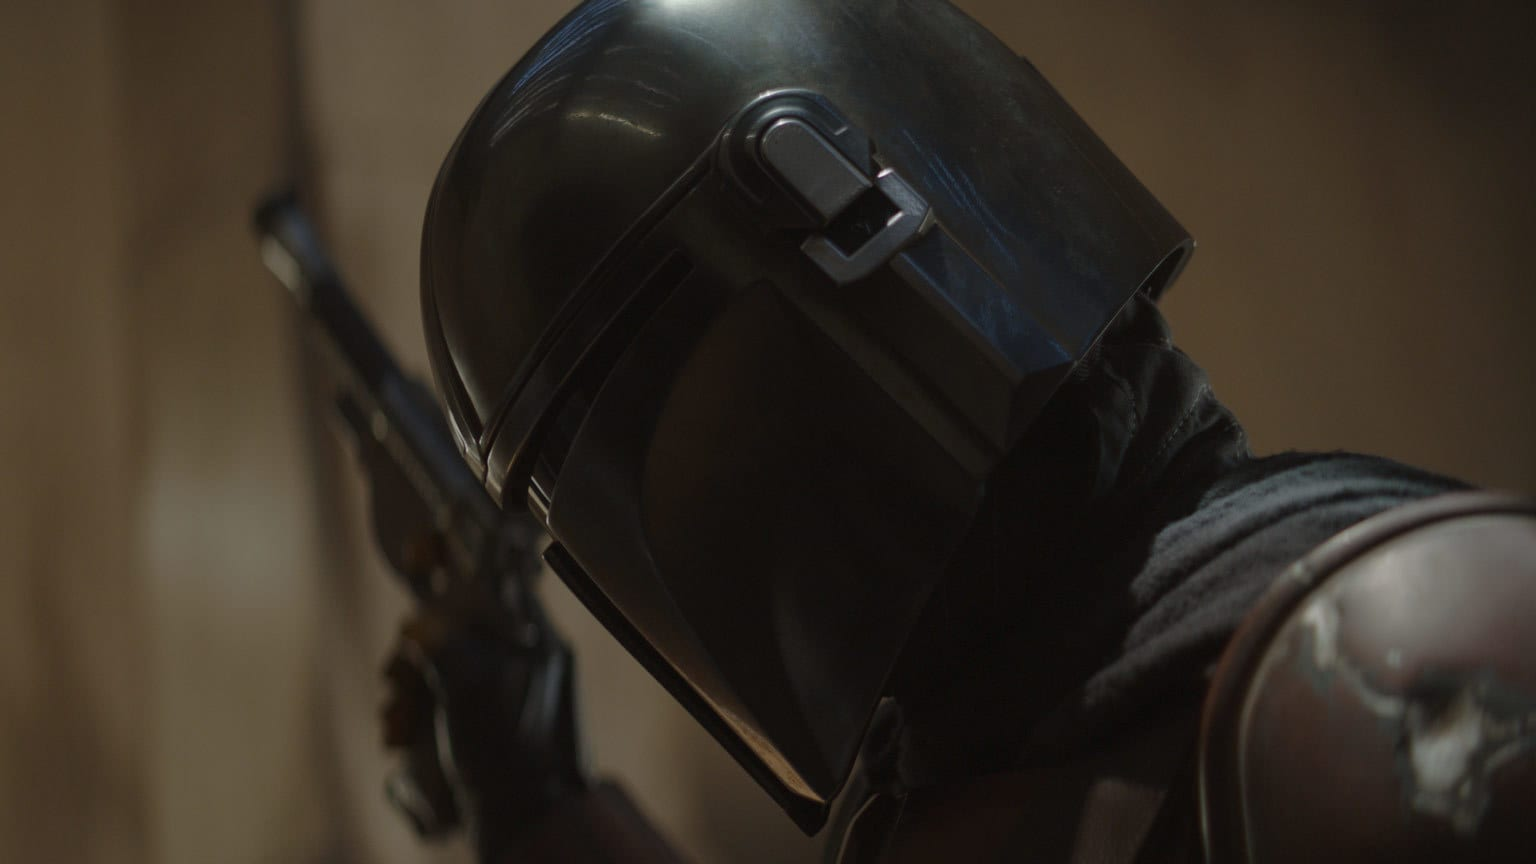 Poll: Which Star Wars Character Has the Coolest Mandalorian Armor?